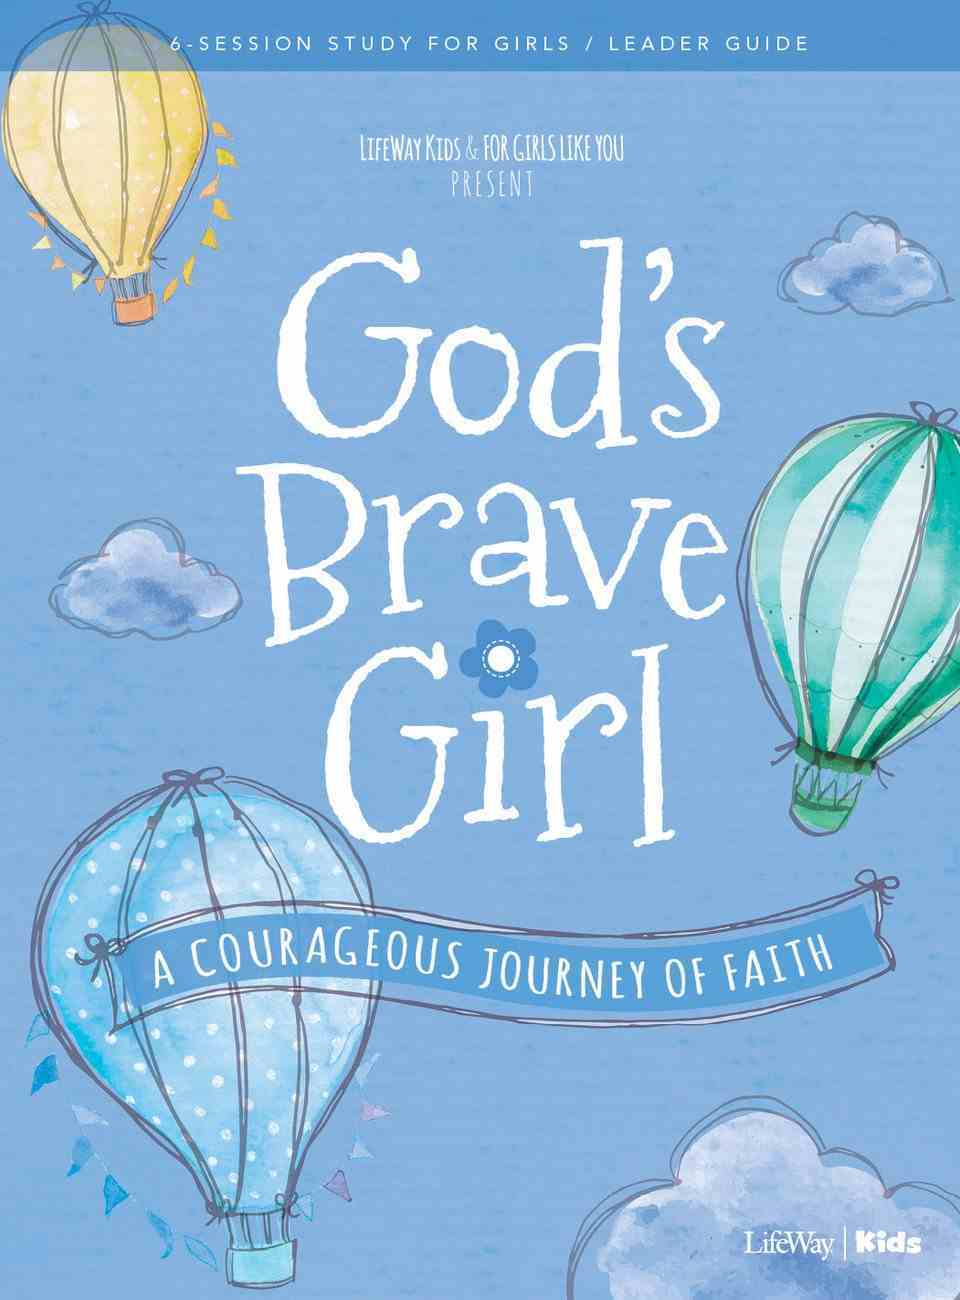 God's Brave Girl : A Courageous Journey of Faith (A 6 Week Study) (Leader Guide) (For Girls Like You Series) Paperback